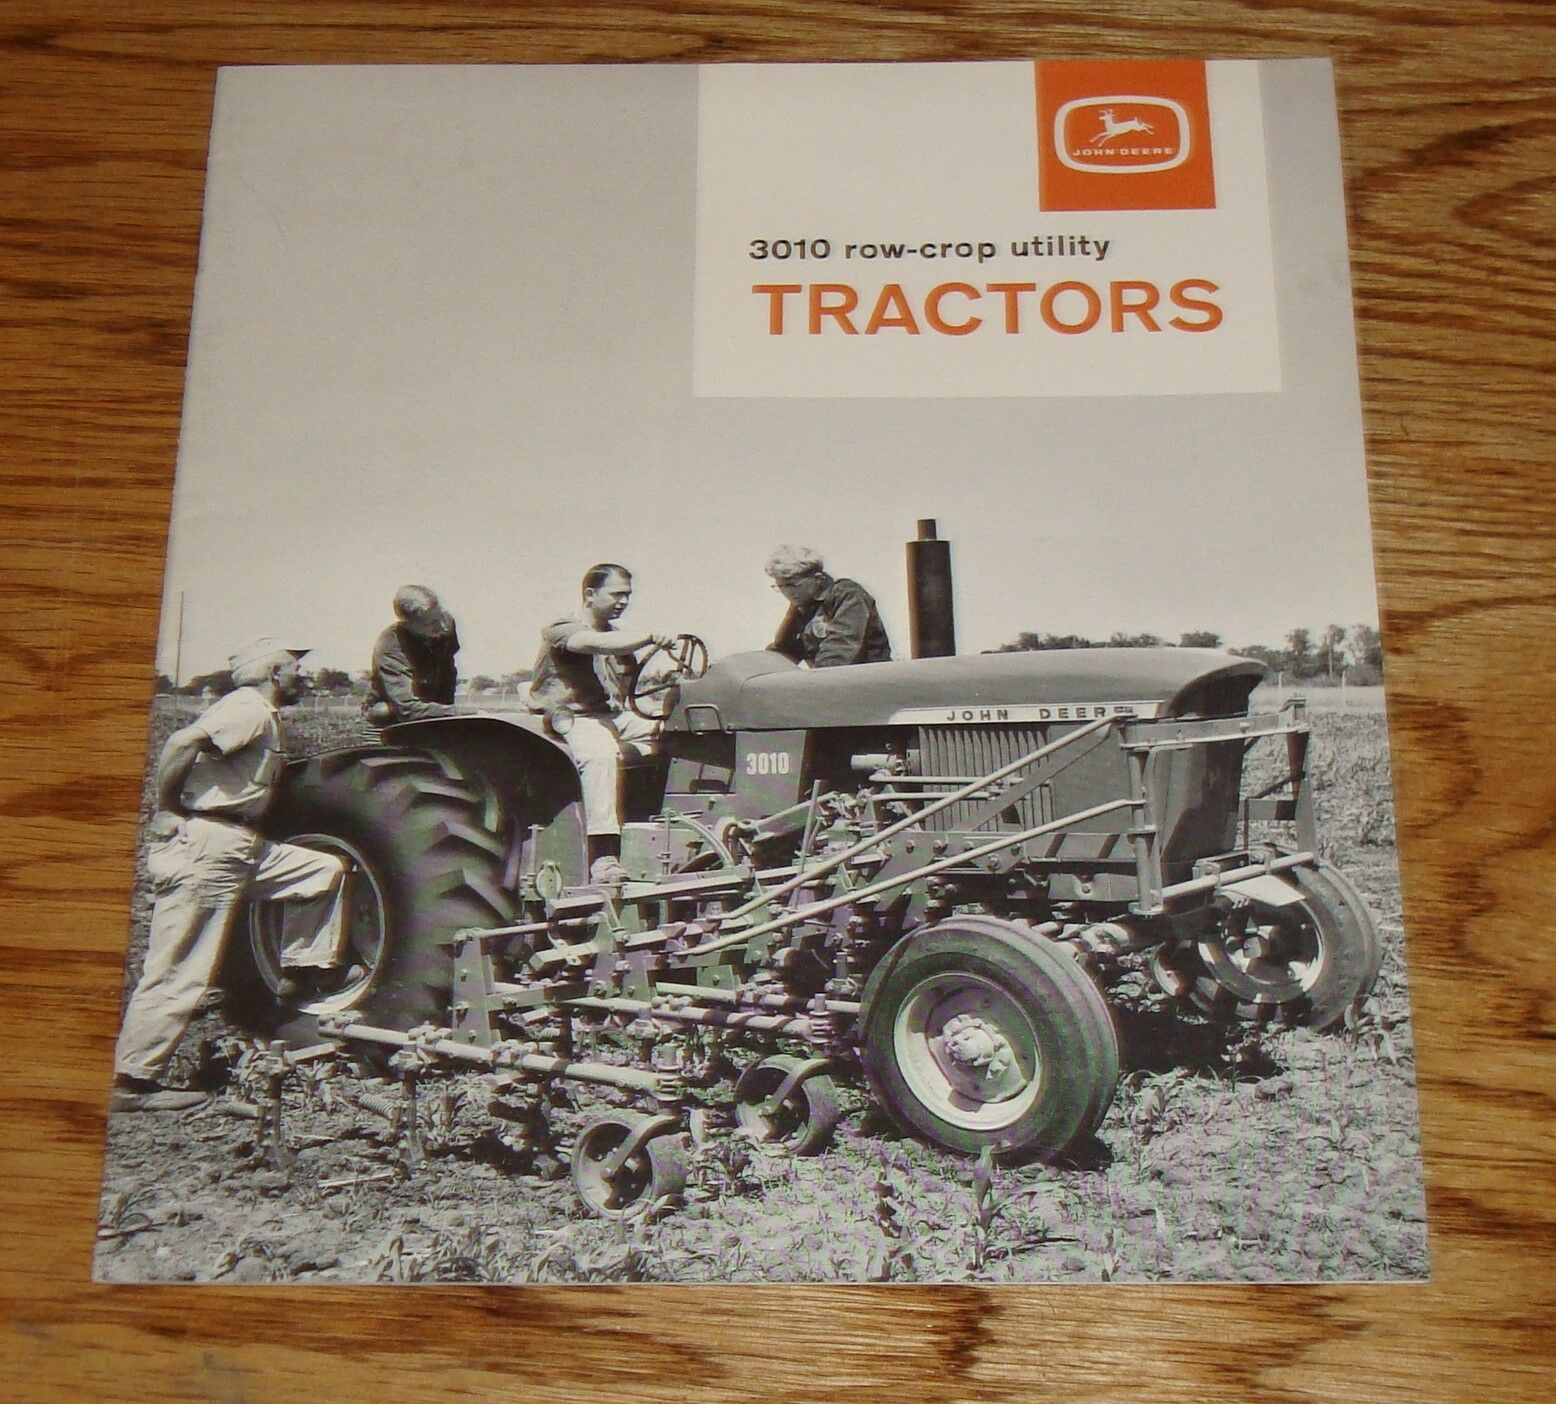 3010 John Deere Wiring Diagram For Sale Schematic Diagrams Original 1962 Row Crop Utility Tractor Sales Ignition Switch